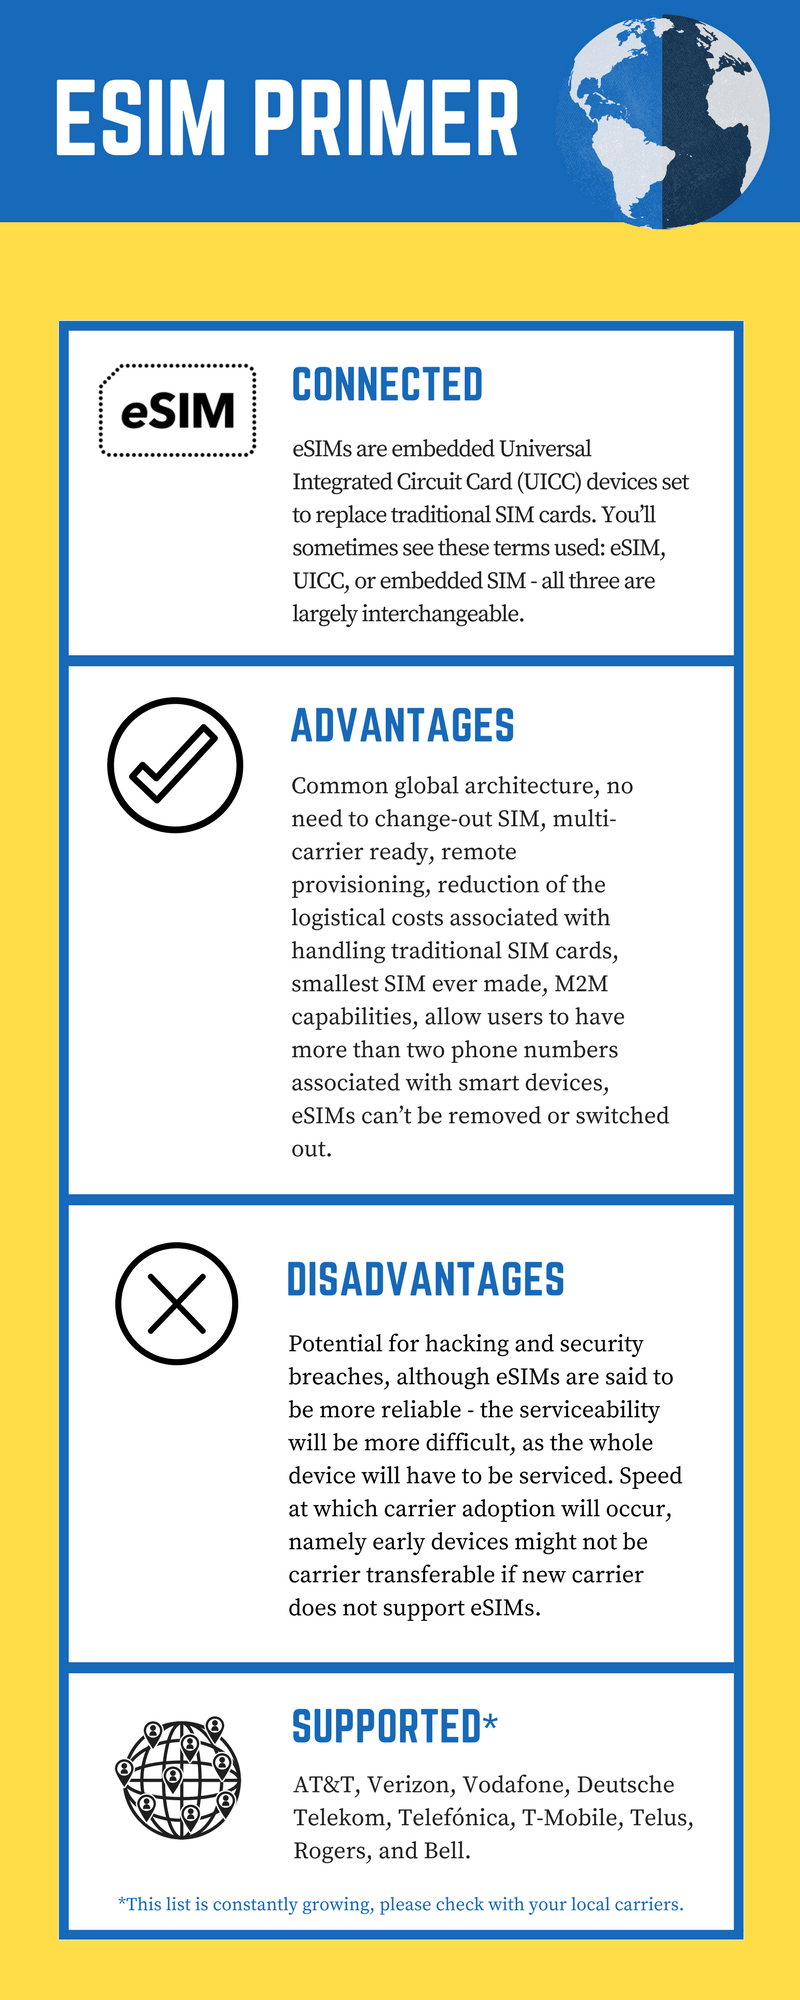 eSIM primer infographic that recounts the text list above.